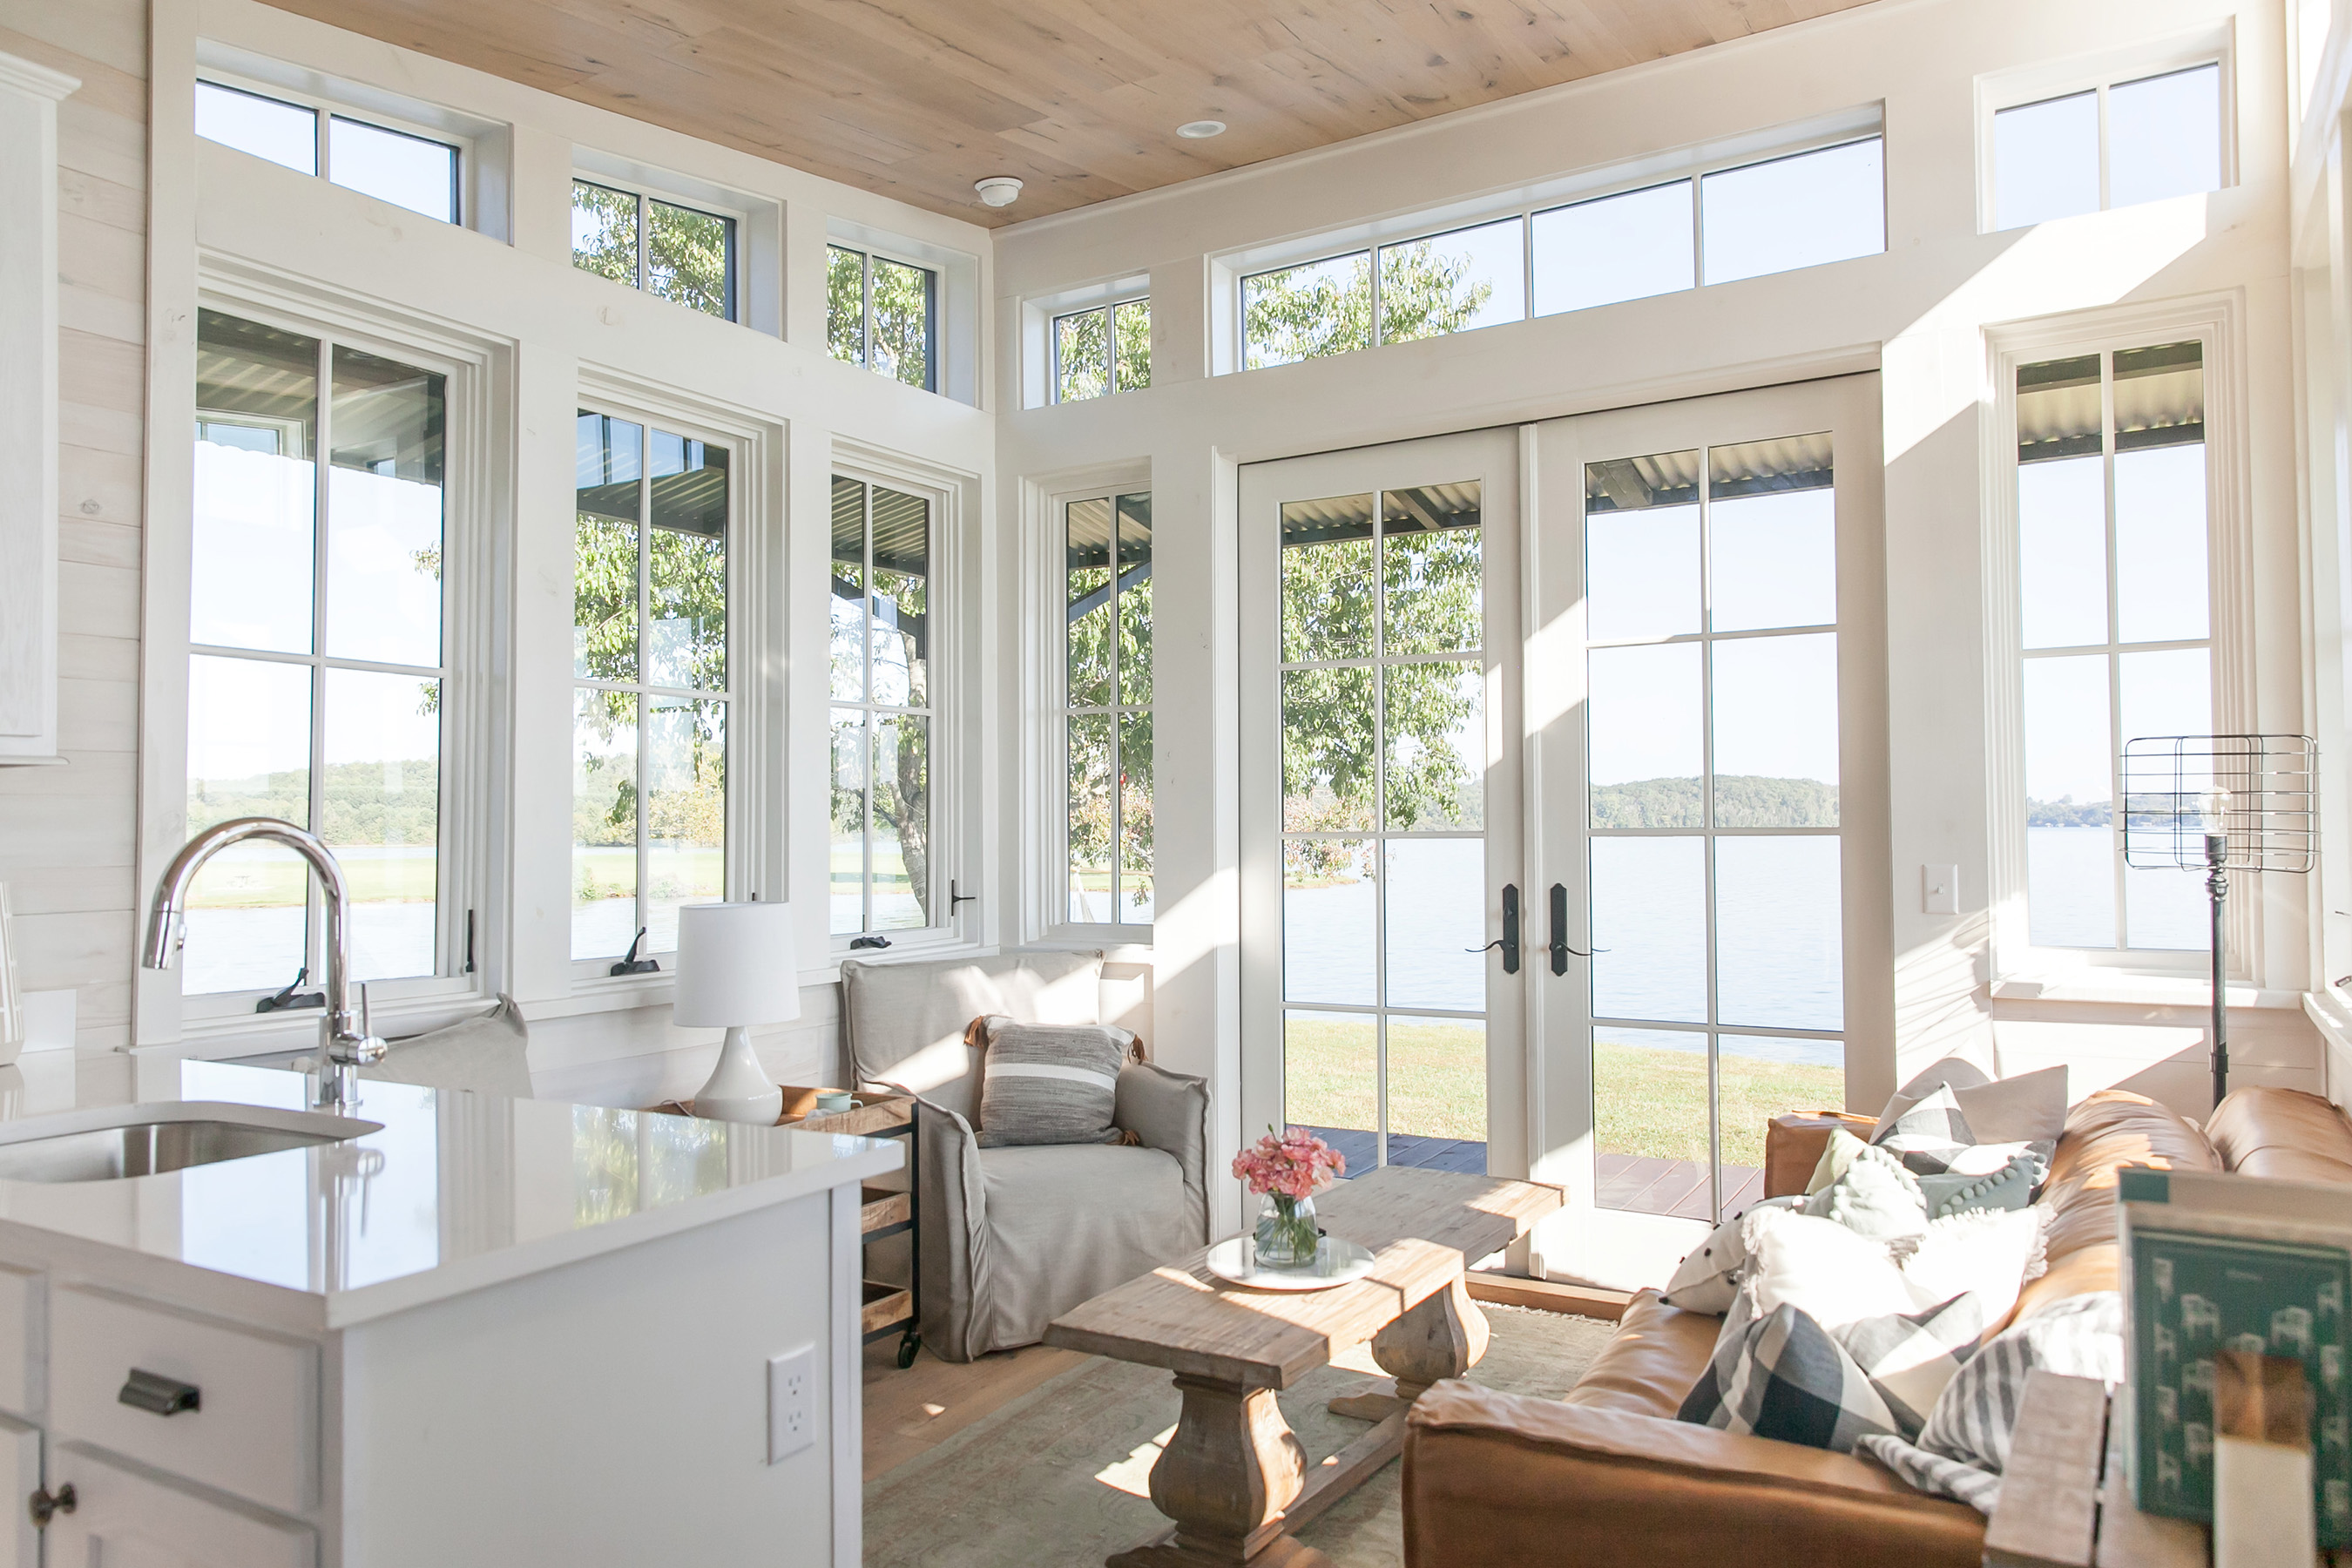 Clayton Tiny Homes Unveils The Saltbox Floor Plan Modern Design  A Grand View